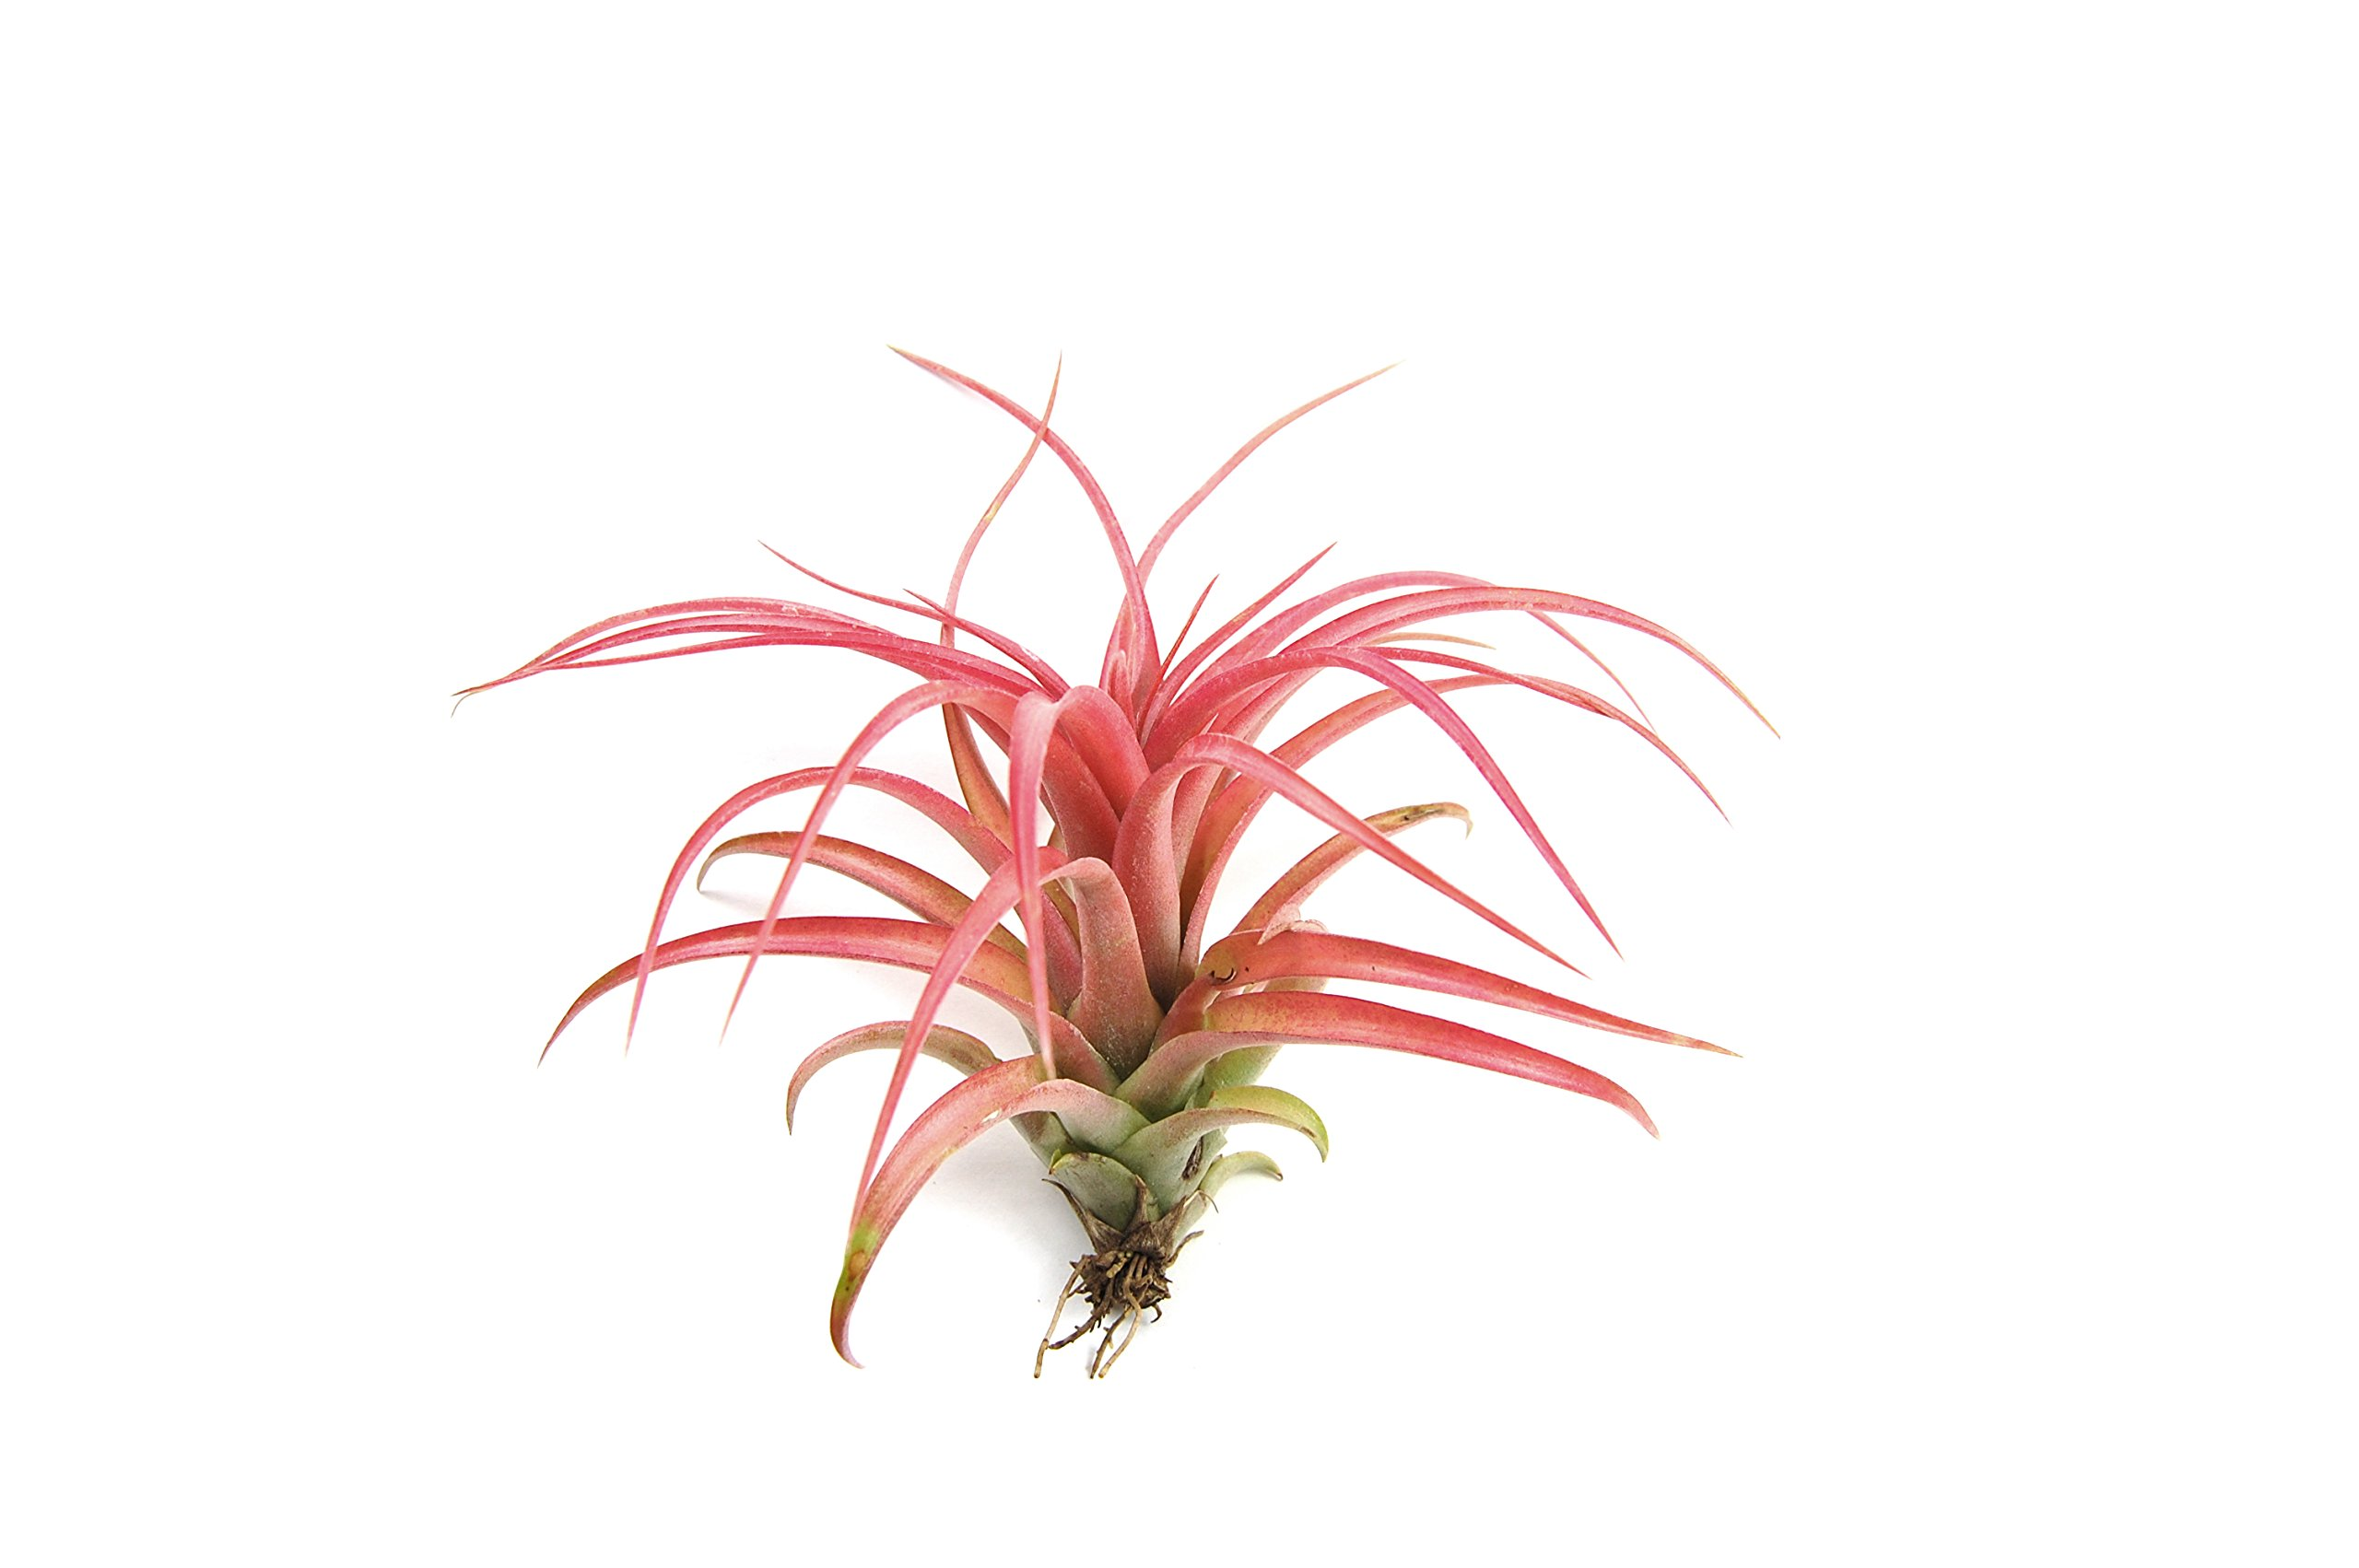 5 Pack Red Abdita Tillandsia Air Plants - Medium Air Plant Variety Pack - 30 Day Guarantee - Fast Shipping - House Plants - Succulents - Free Air Plant Care Ebook By Jody James